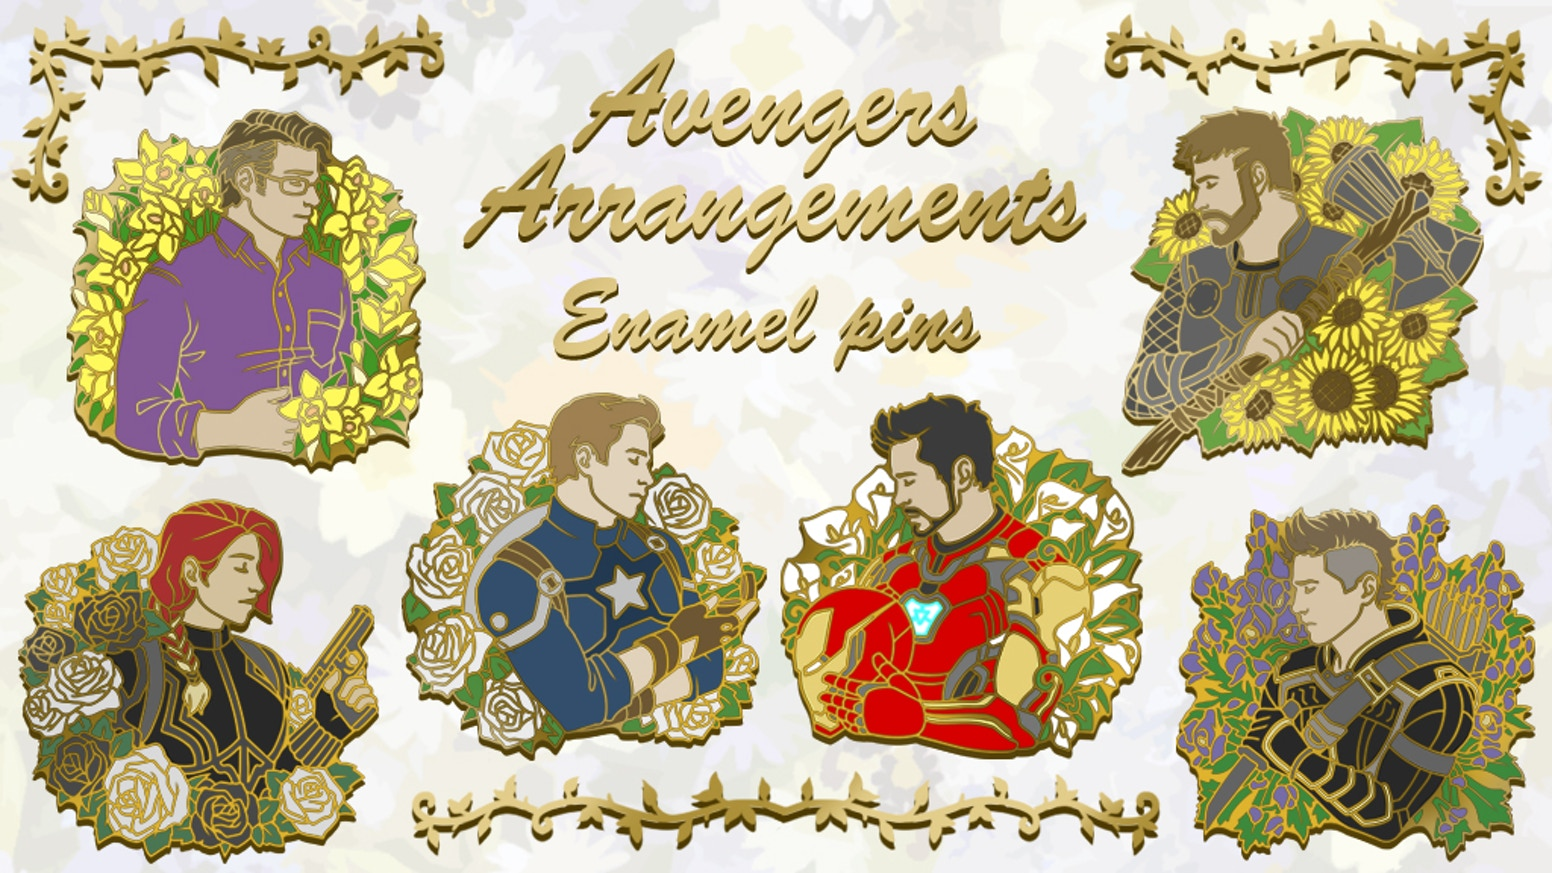 """Avengers Arrangements"" is a set of hard enamel pins featuring our favorite MCU heroes and their flower languages."